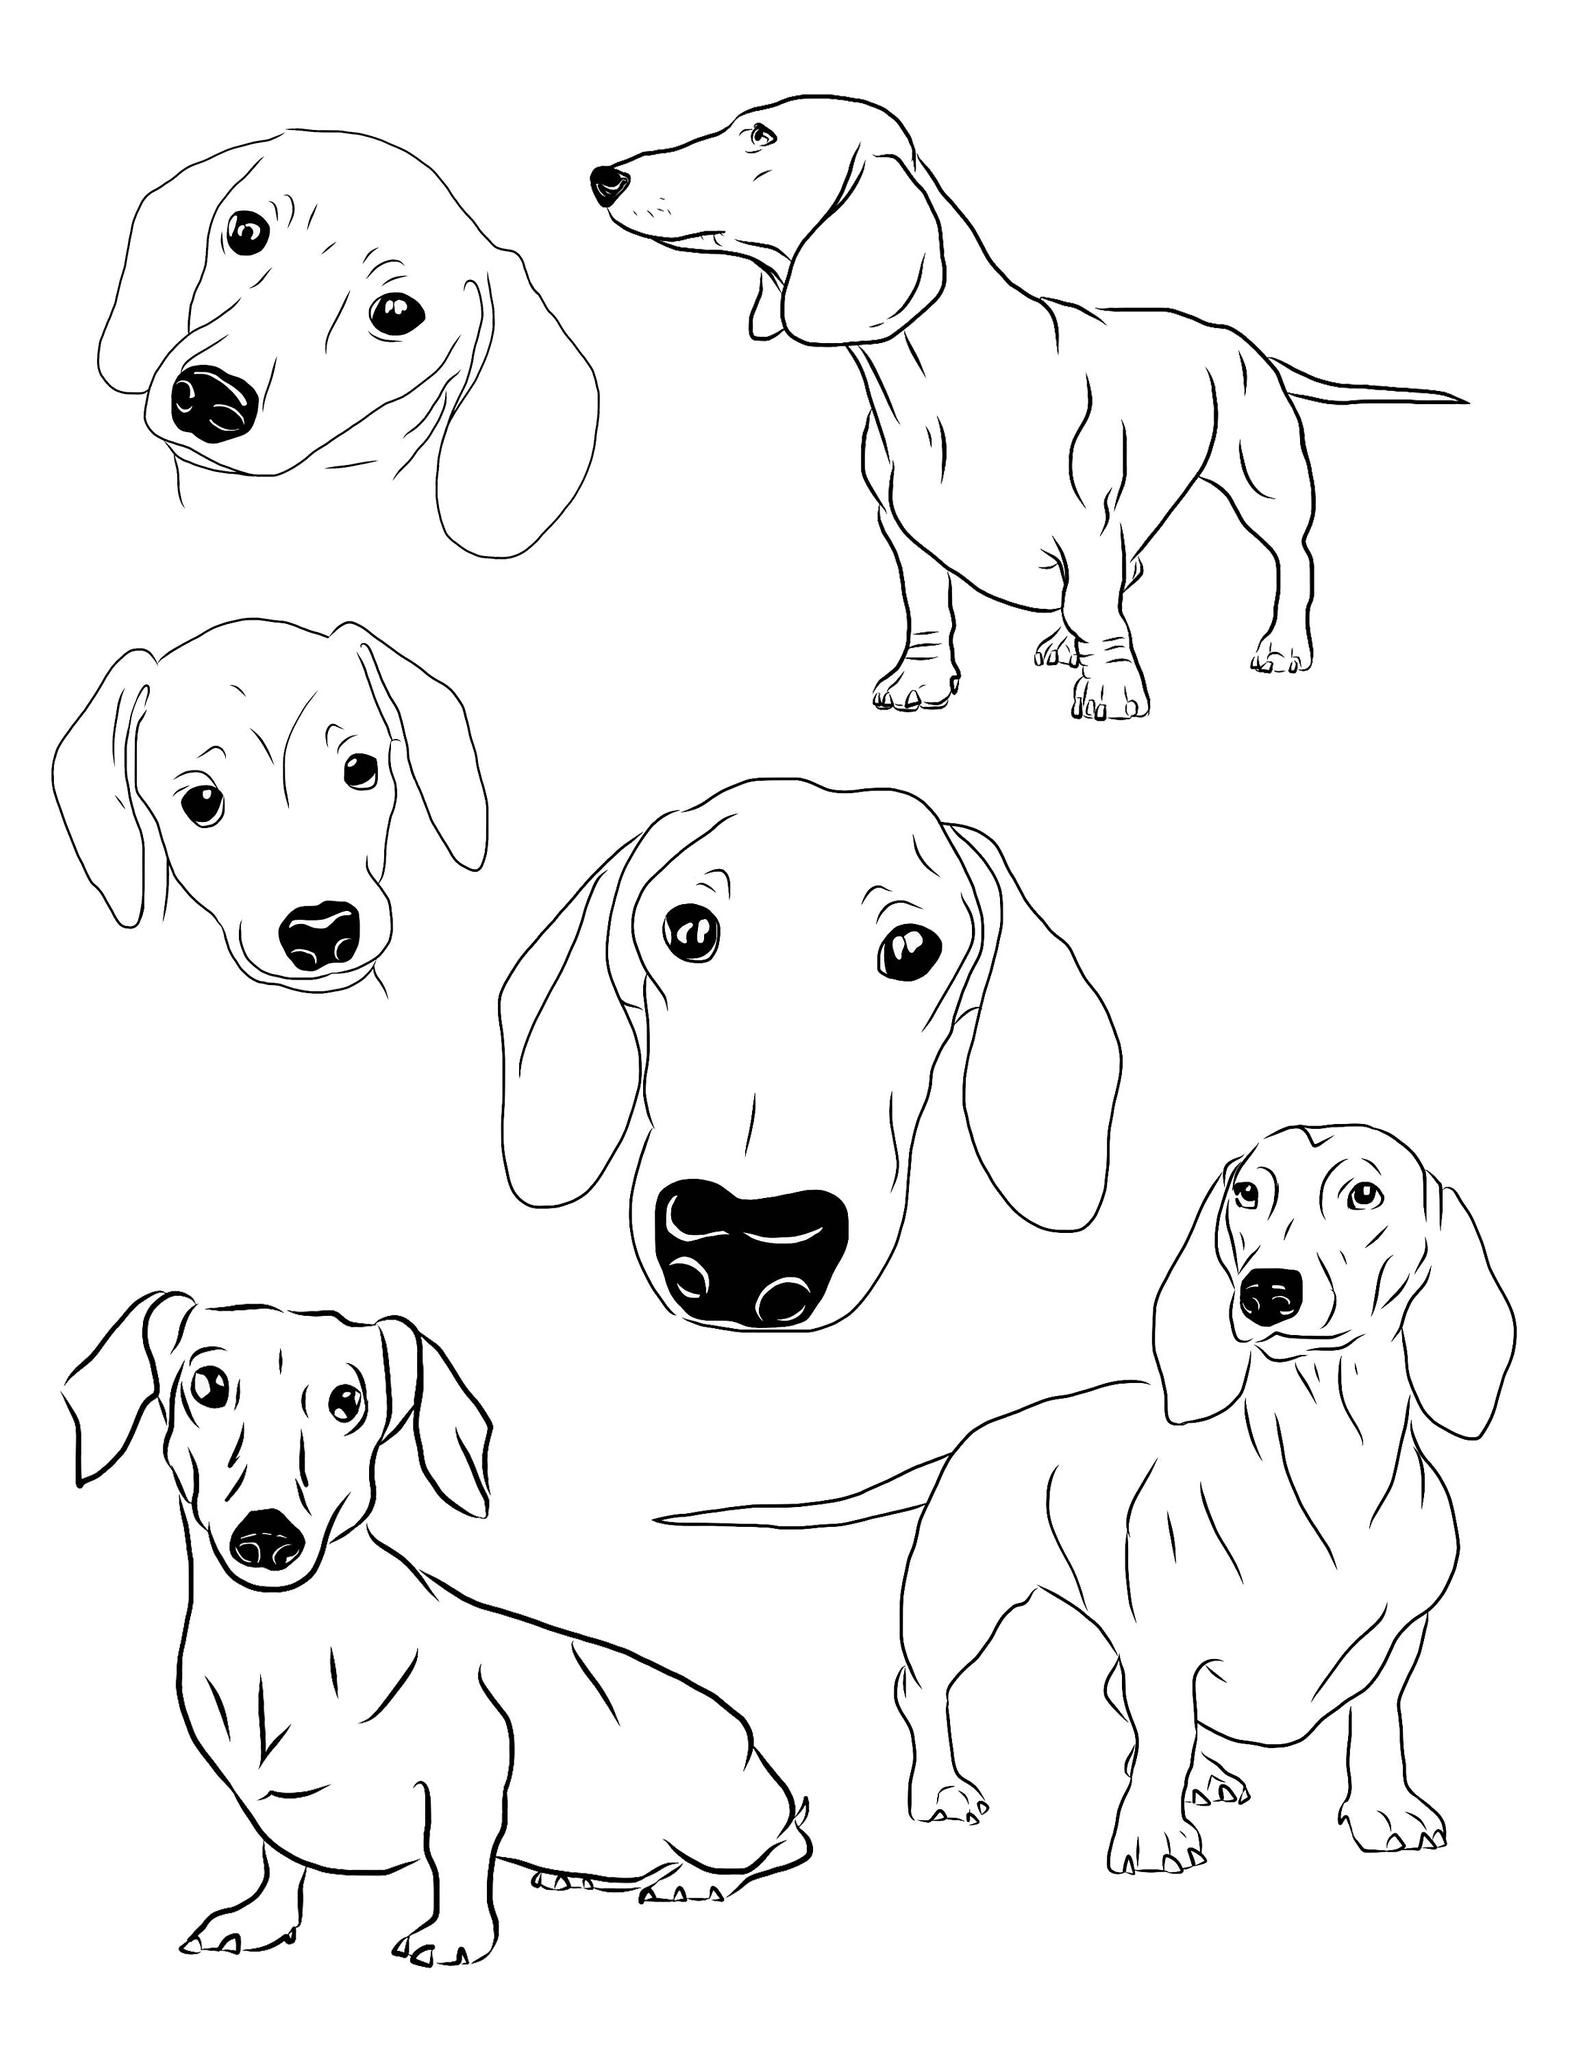 Teckel Clipart Set 6 Teckel Download Afdrukbare Instant Puppy Etsy In 2020 Dachshund Drawing Dachshund Art Dachshund Tattoo